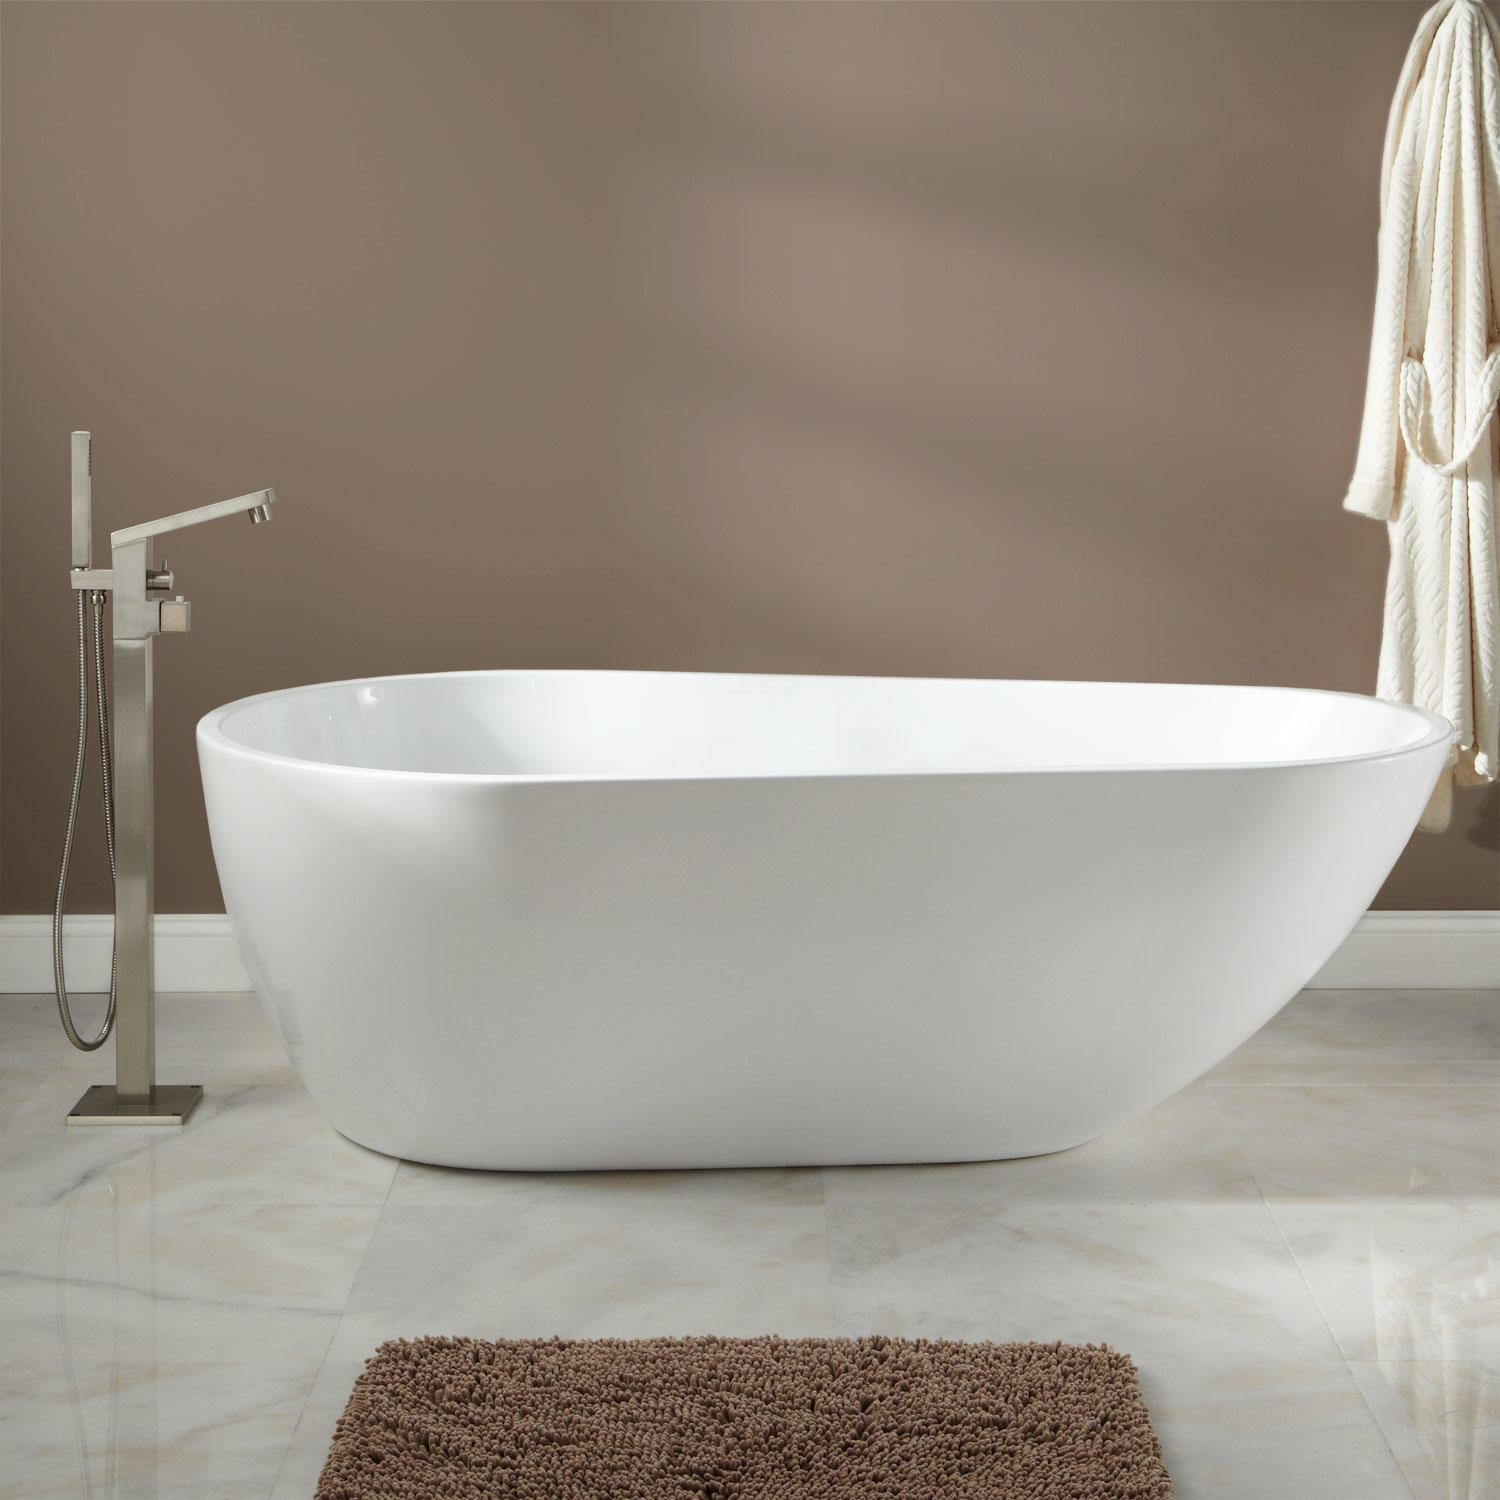 Arturi Round Acrylic Soaking Tub Bathroom